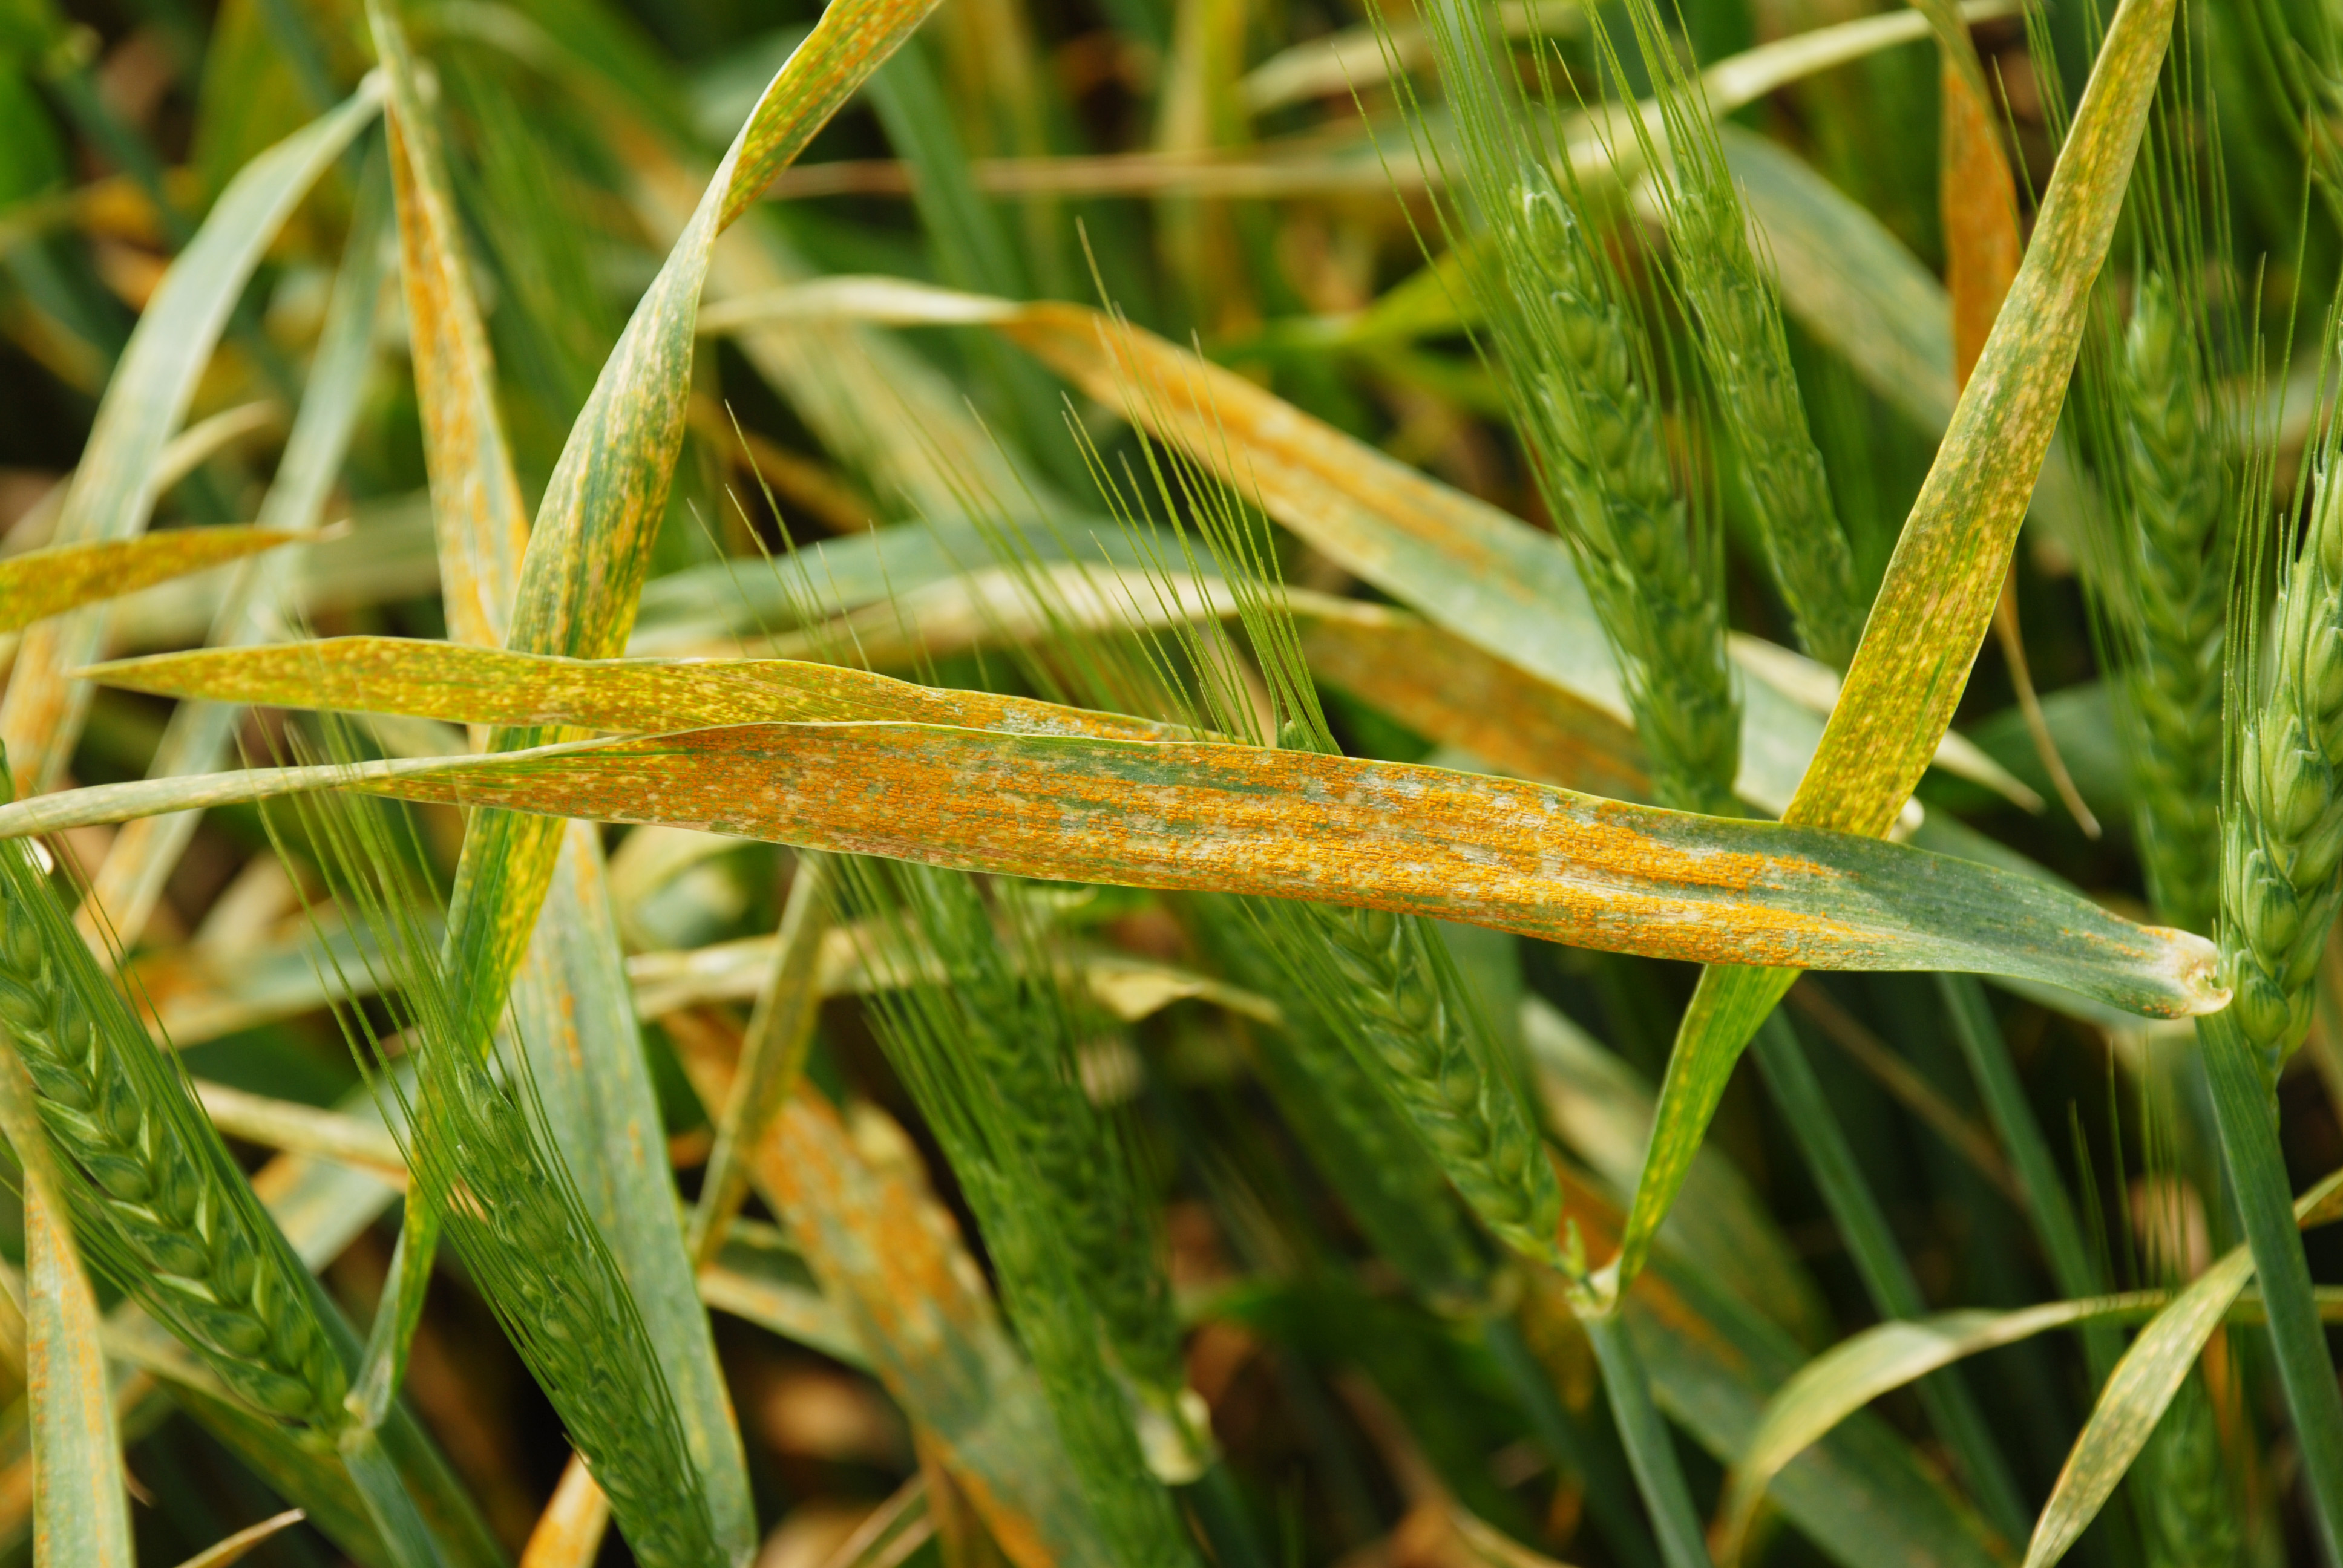 An agronomic photo showing wheat diseases.